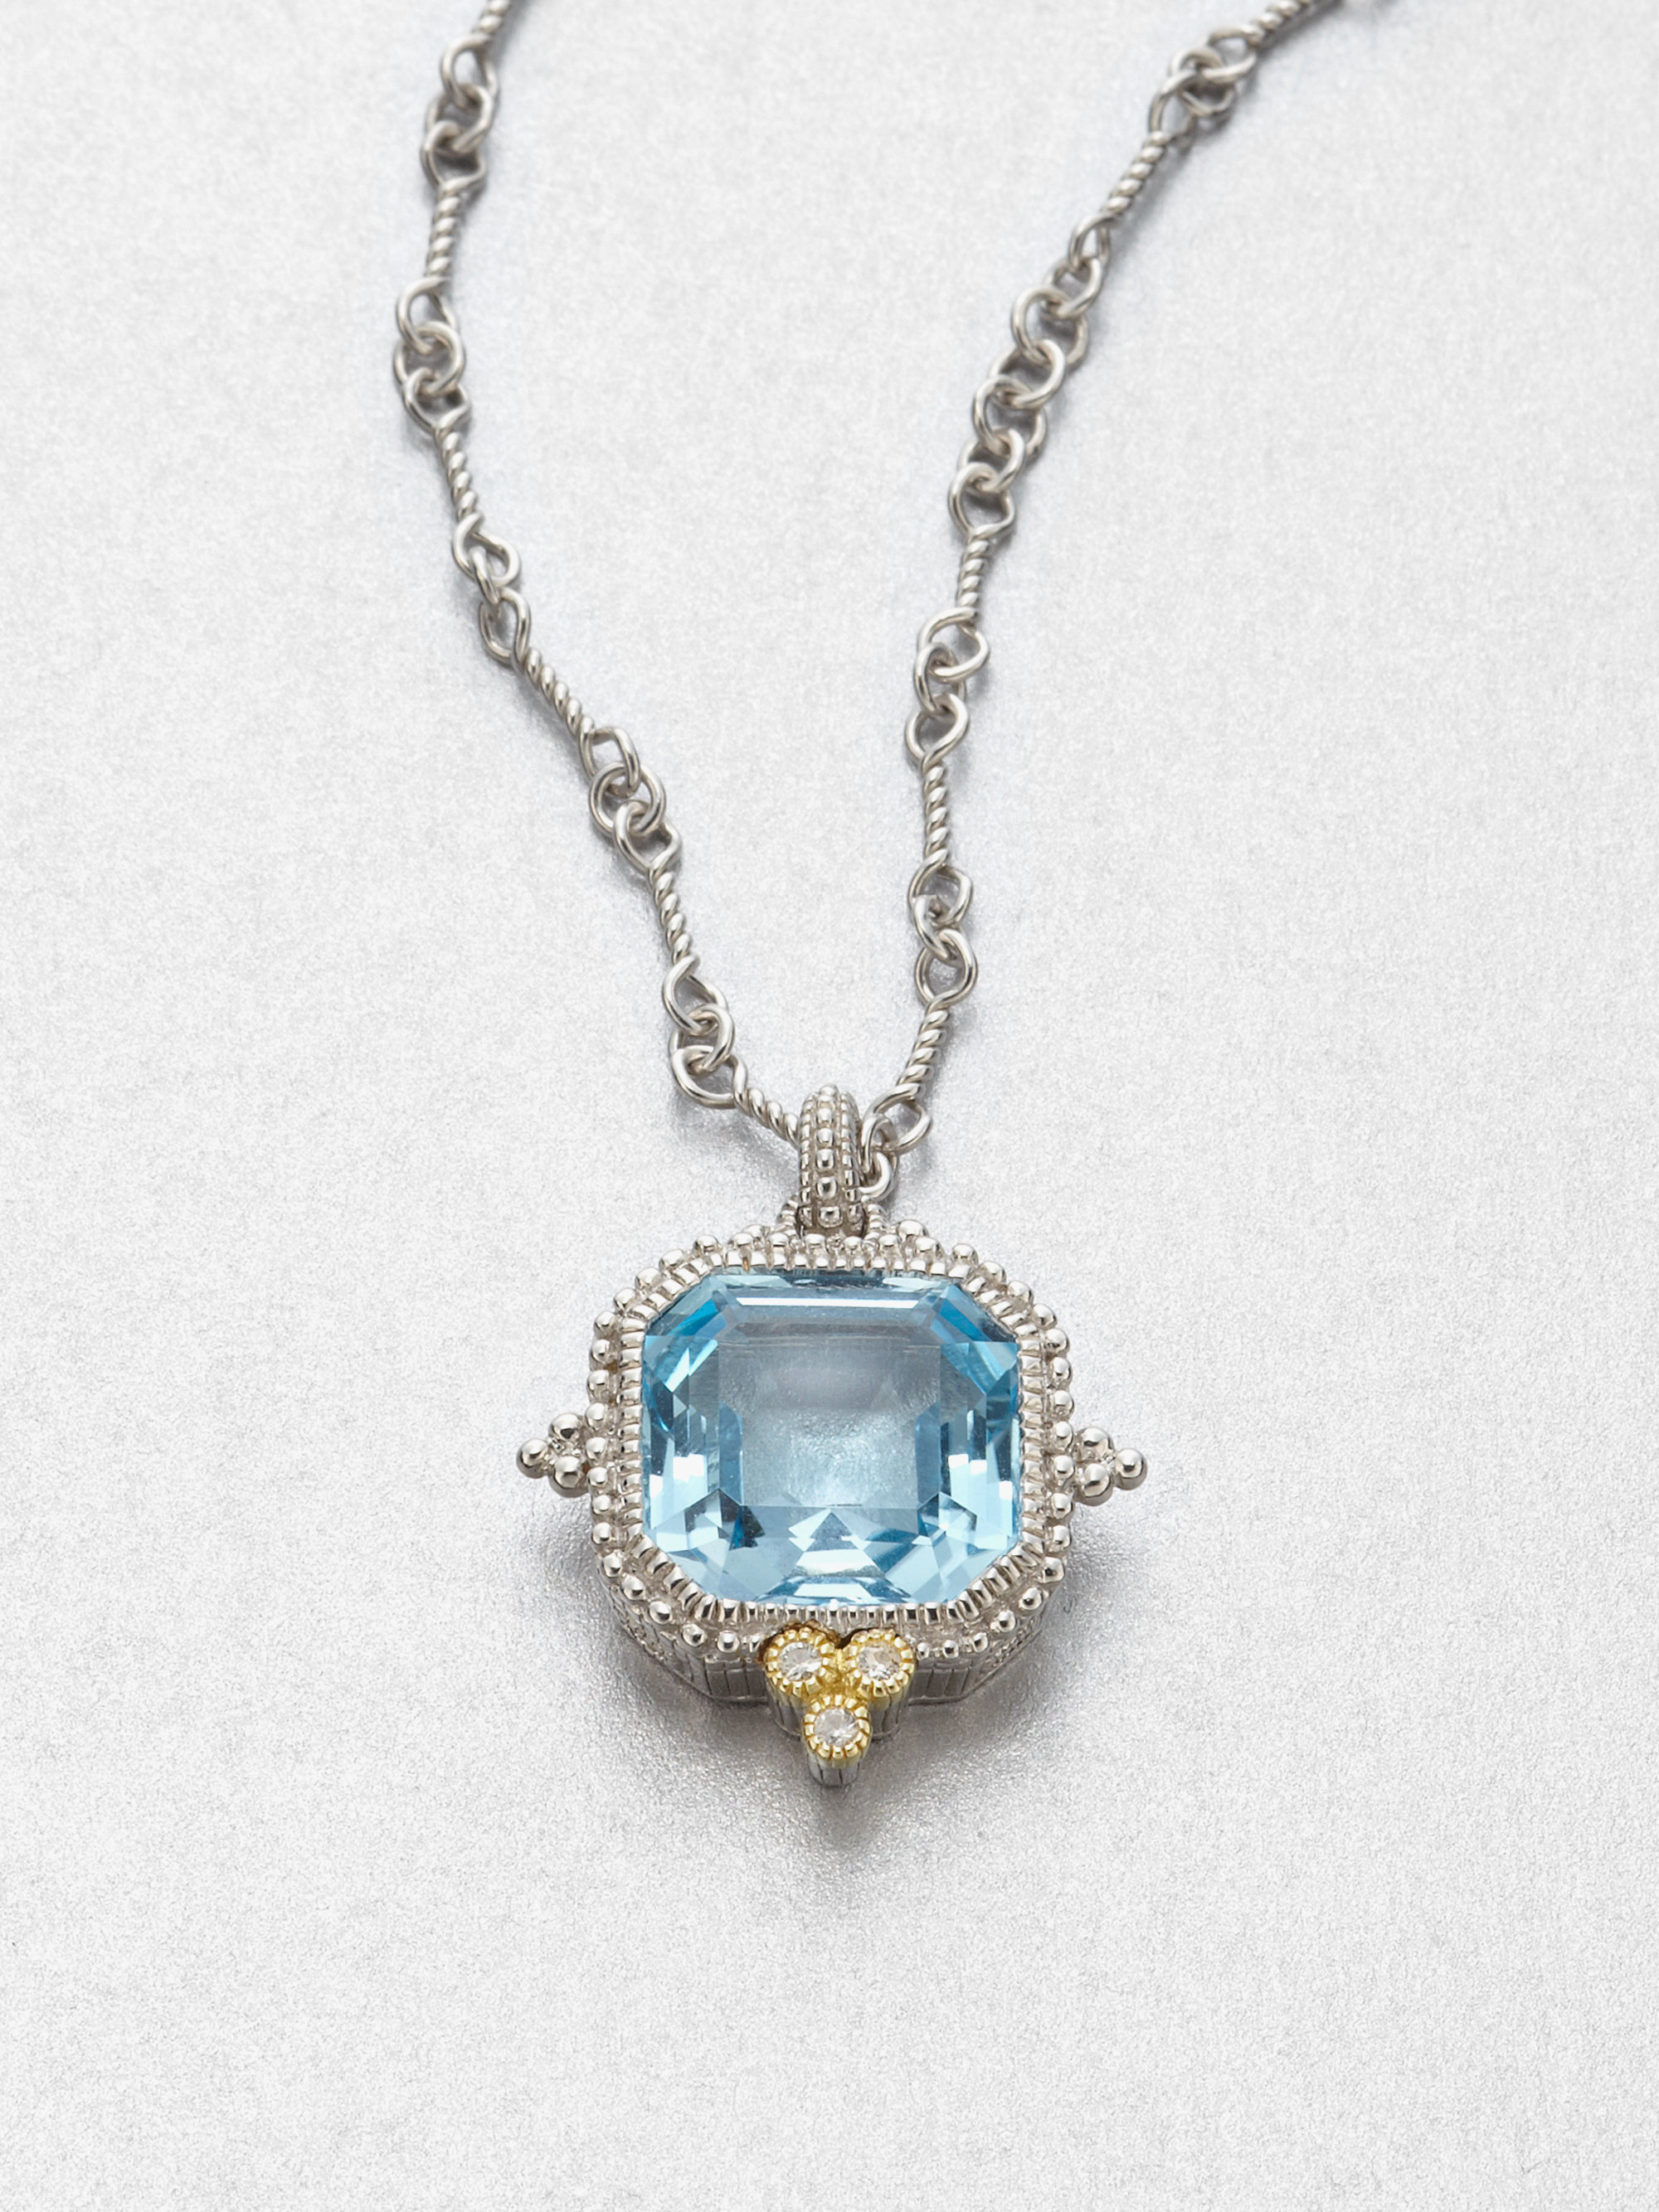 Lyst judith ripka blue topaz sterling silver pendant necklace in blue gallery aloadofball Gallery